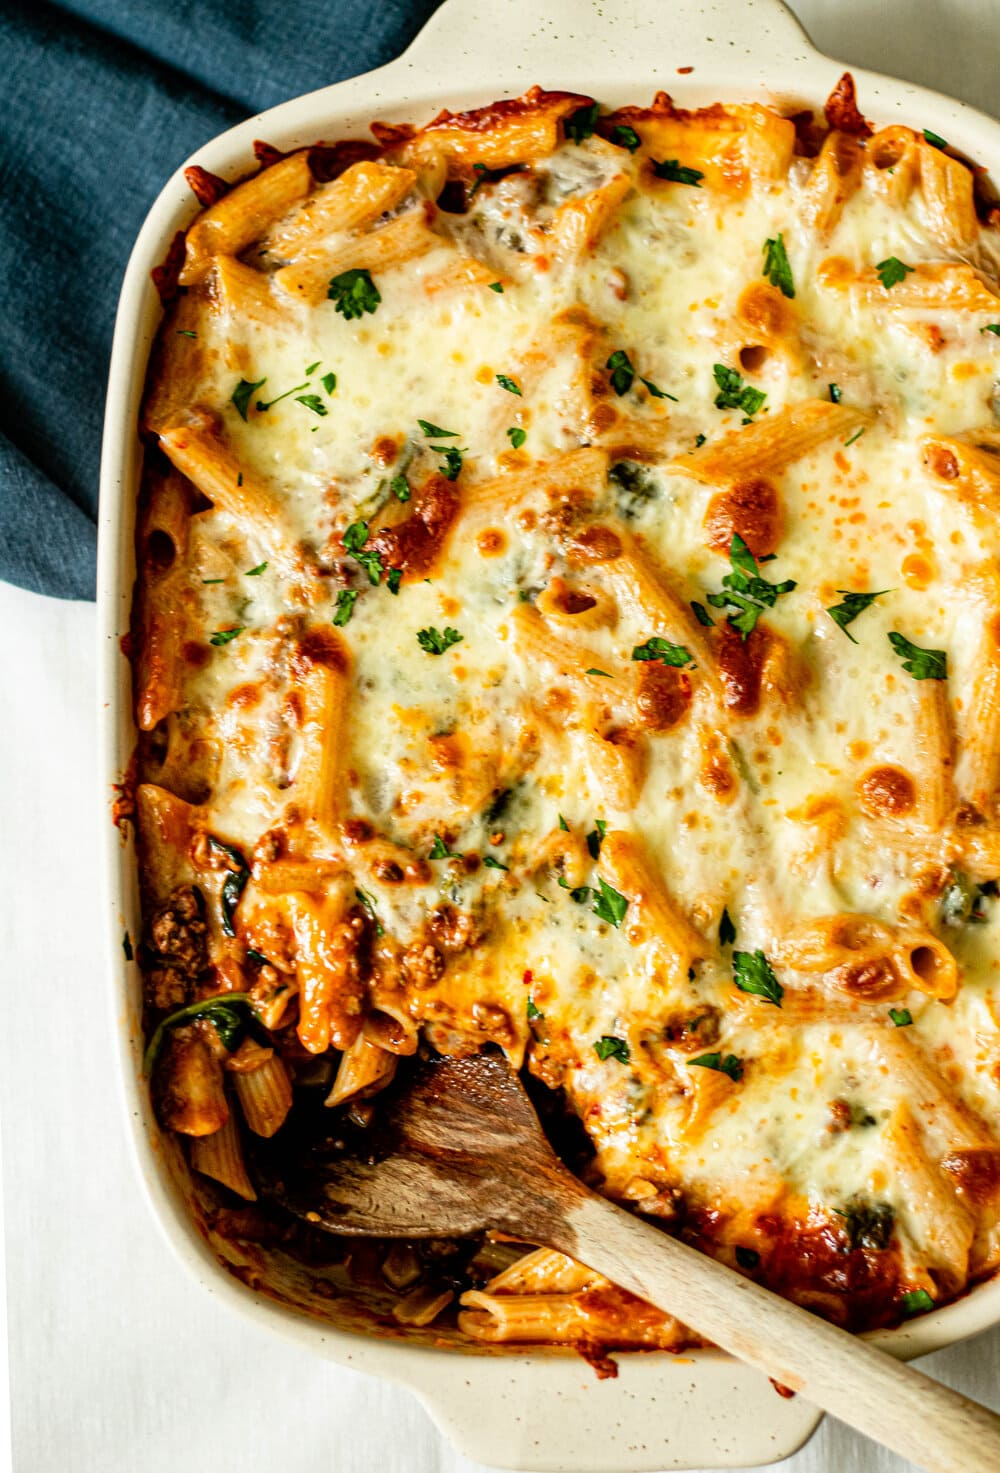 baked penne pasta in white baking dish with wooden serving spoon